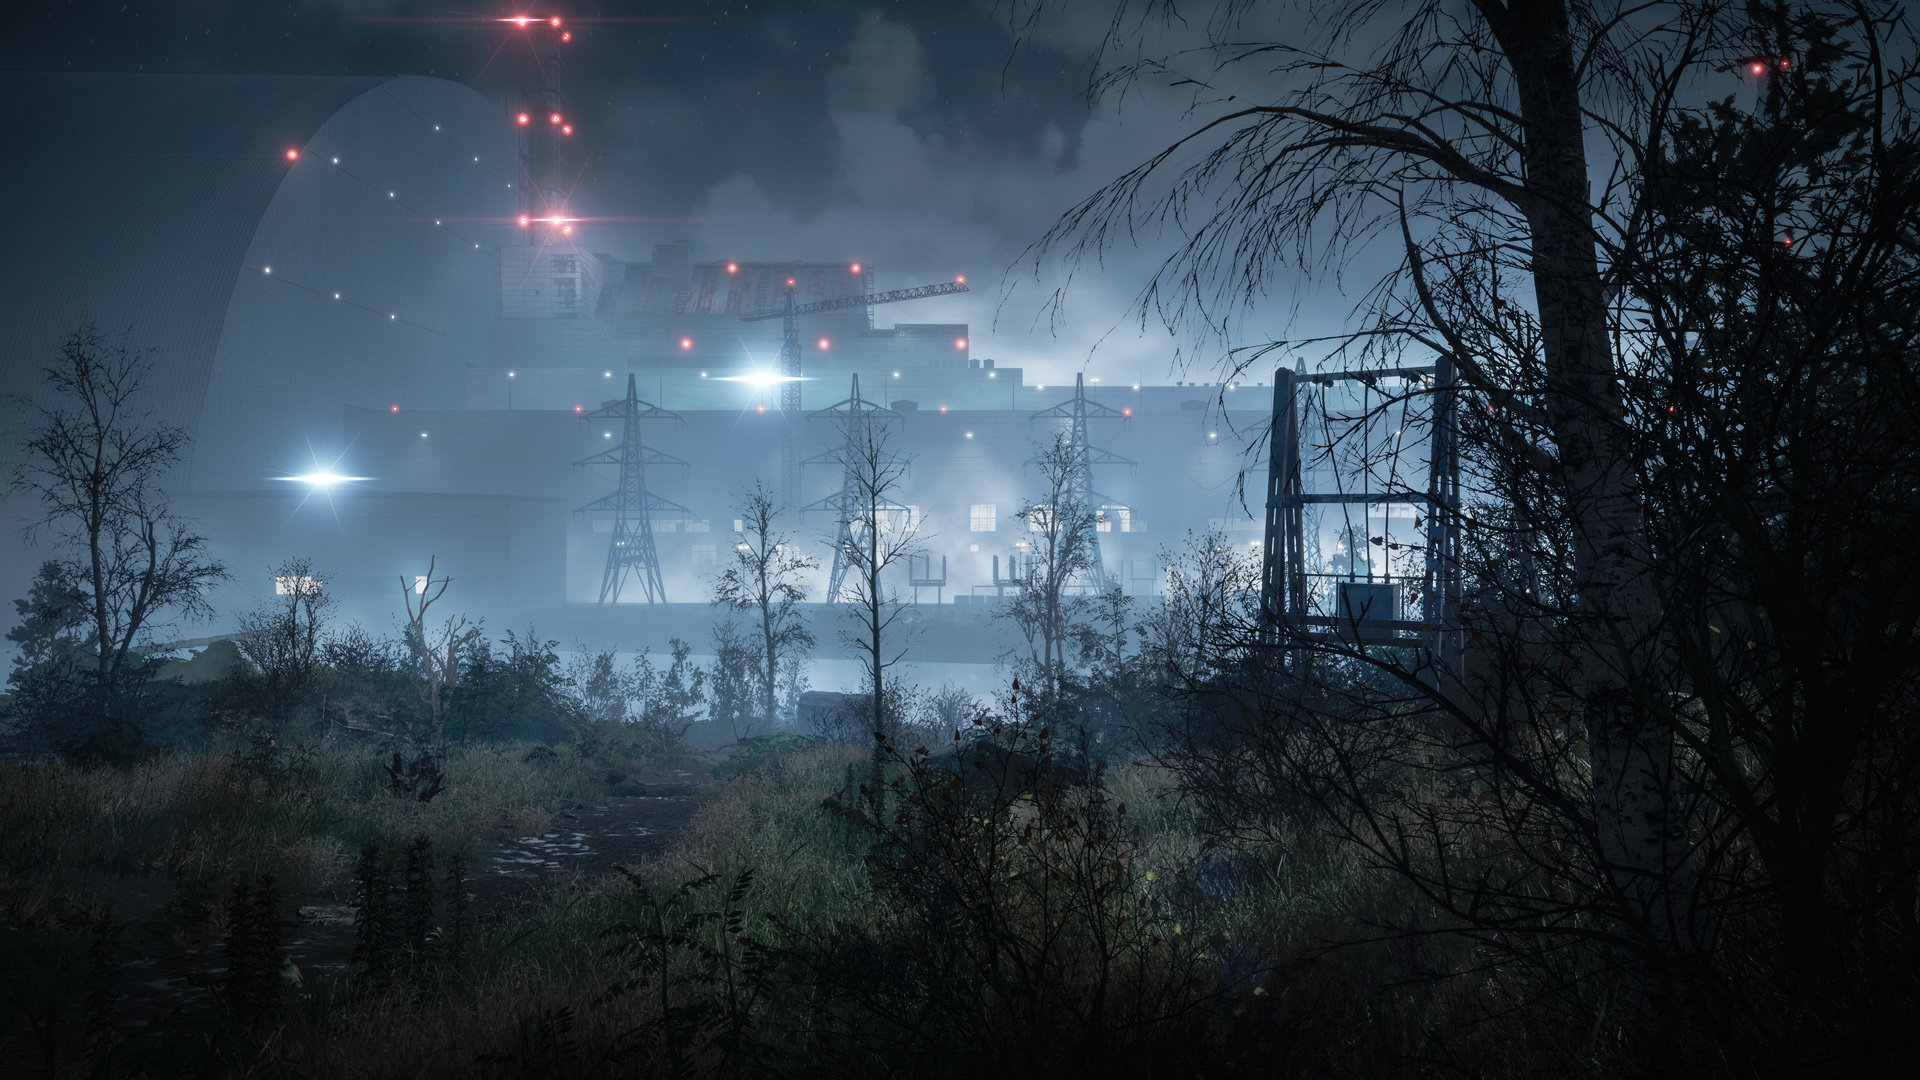 The outside of a power plant at night in Chernobylite.